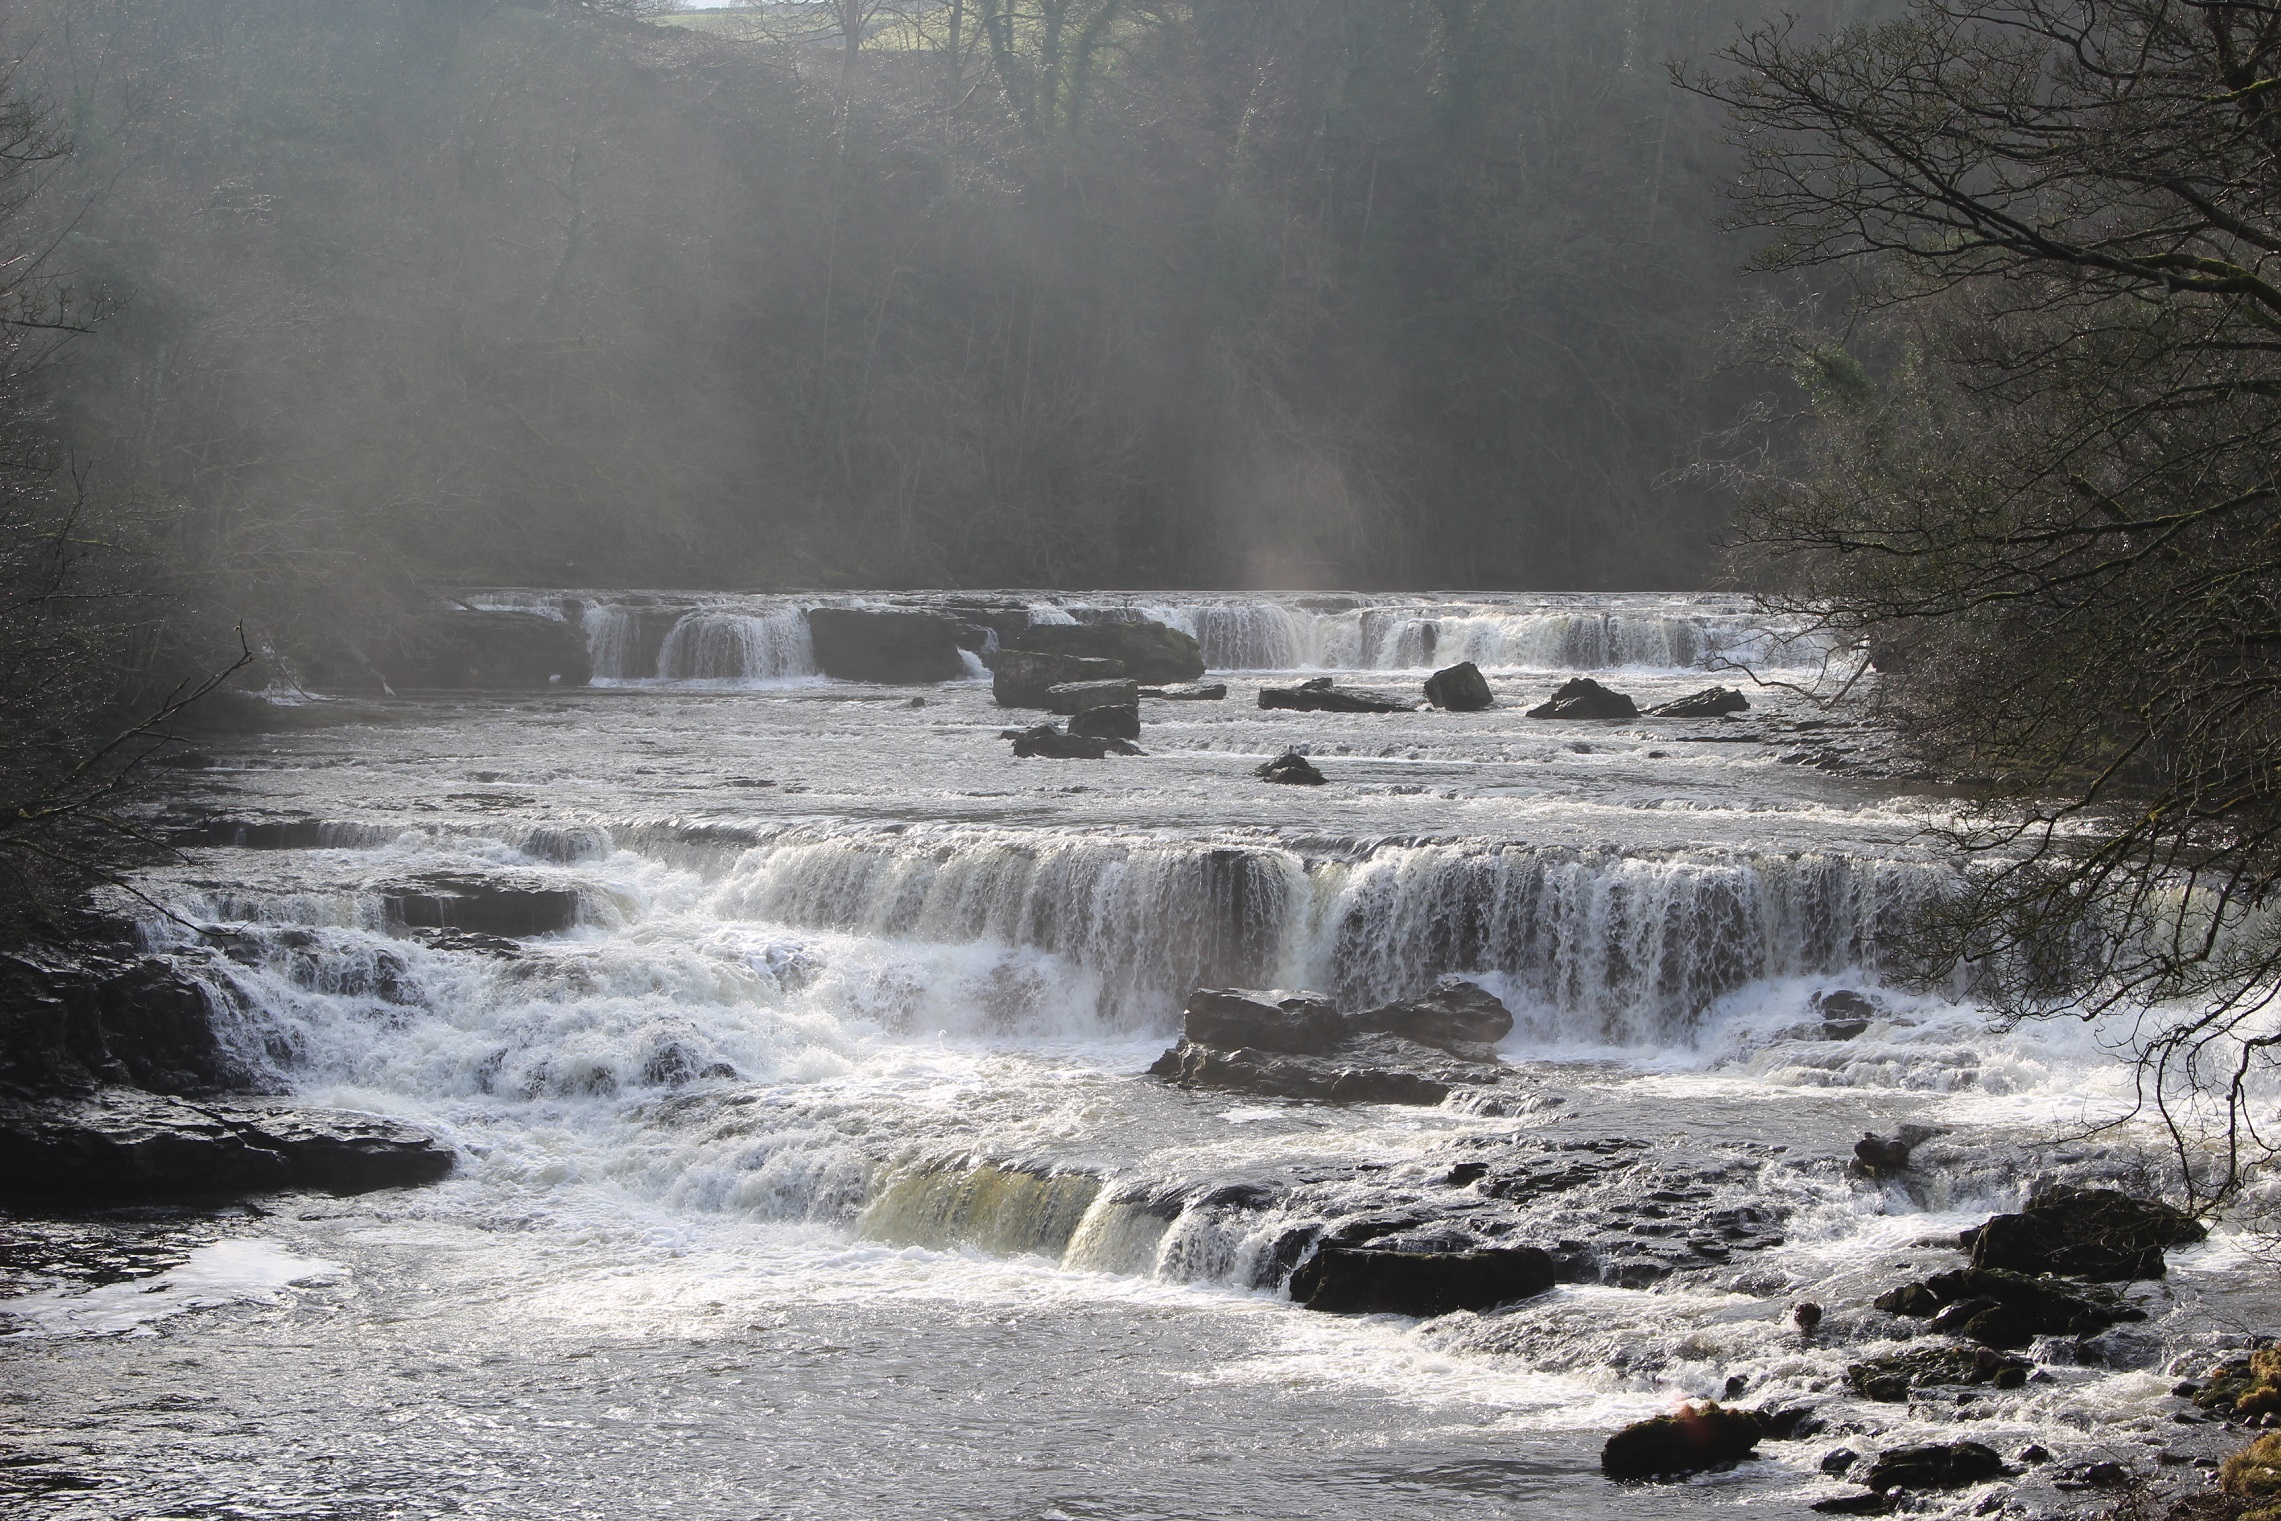 Falls on the River Ure